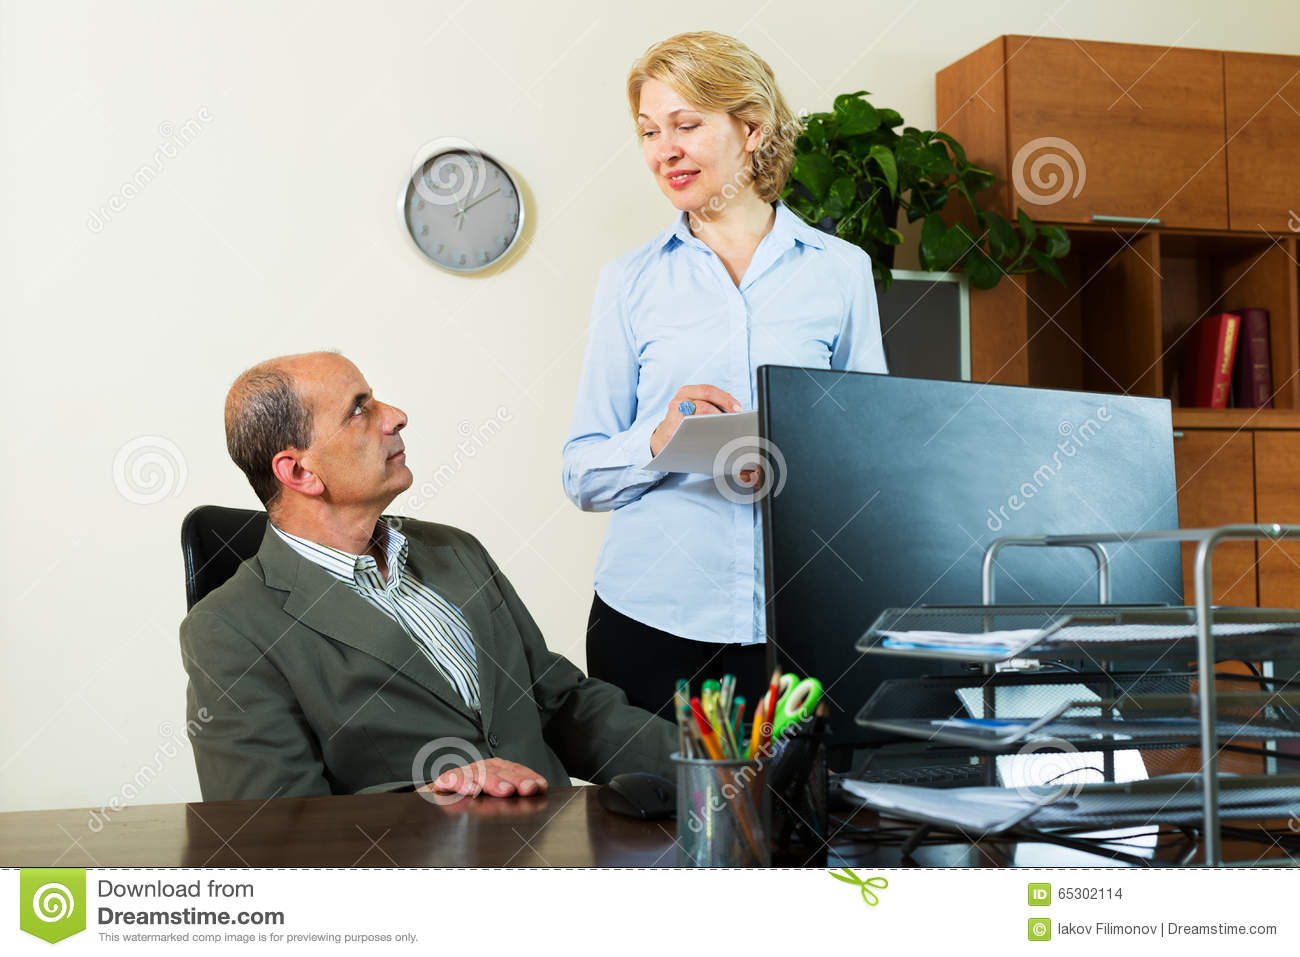 chief giving task to mature secretary stock photo - image of